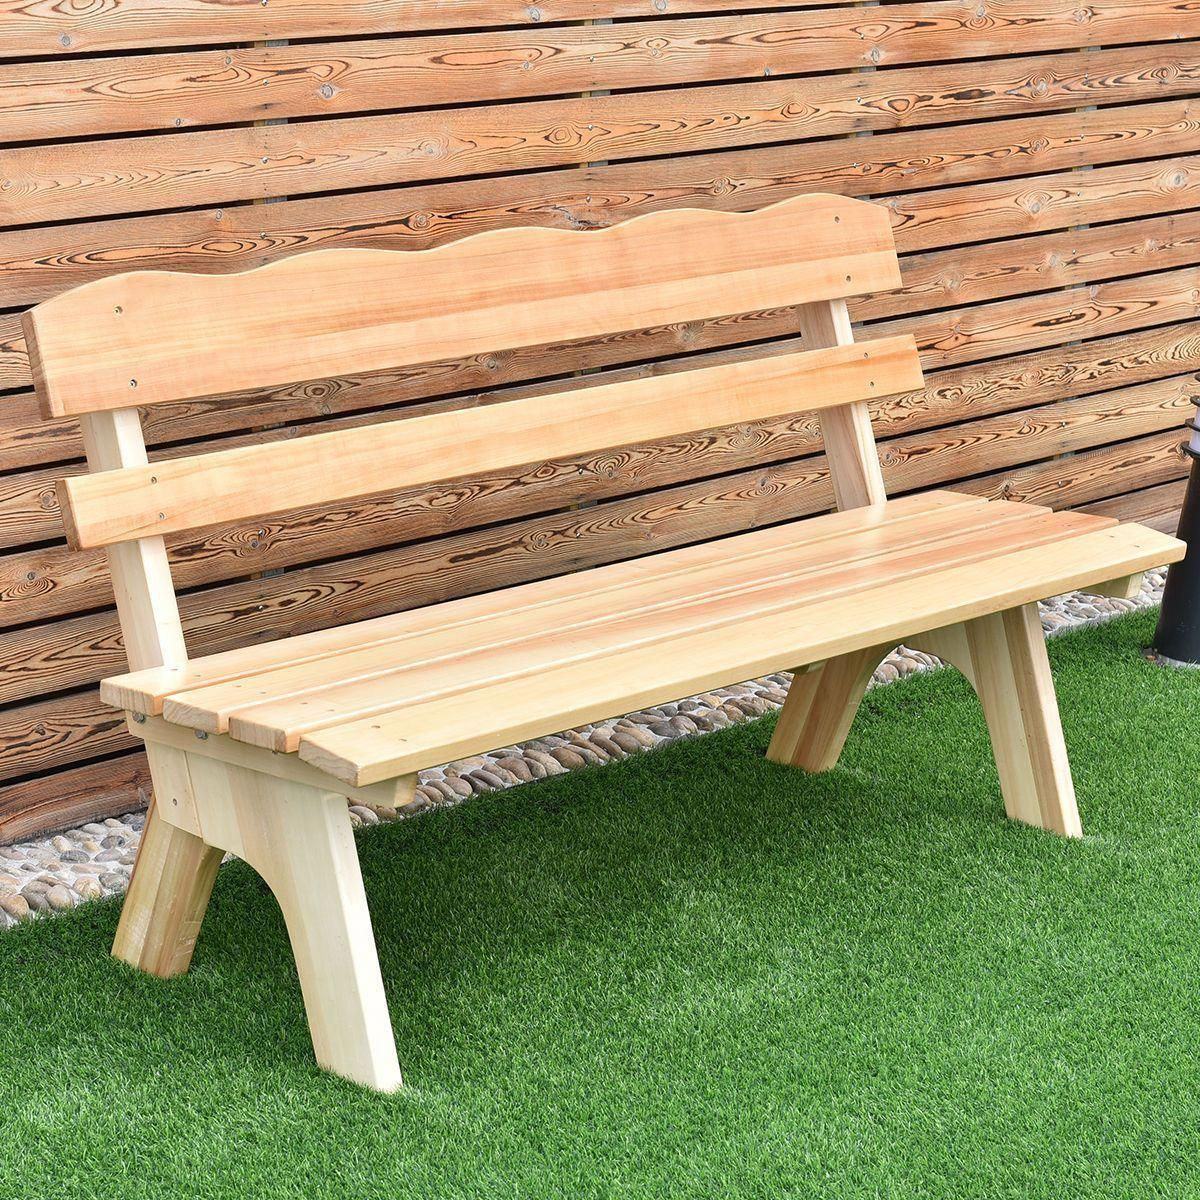 Swell Corner Bench With Storage Miter Saw Bench Rustic Bar Theyellowbook Wood Chair Design Ideas Theyellowbookinfo